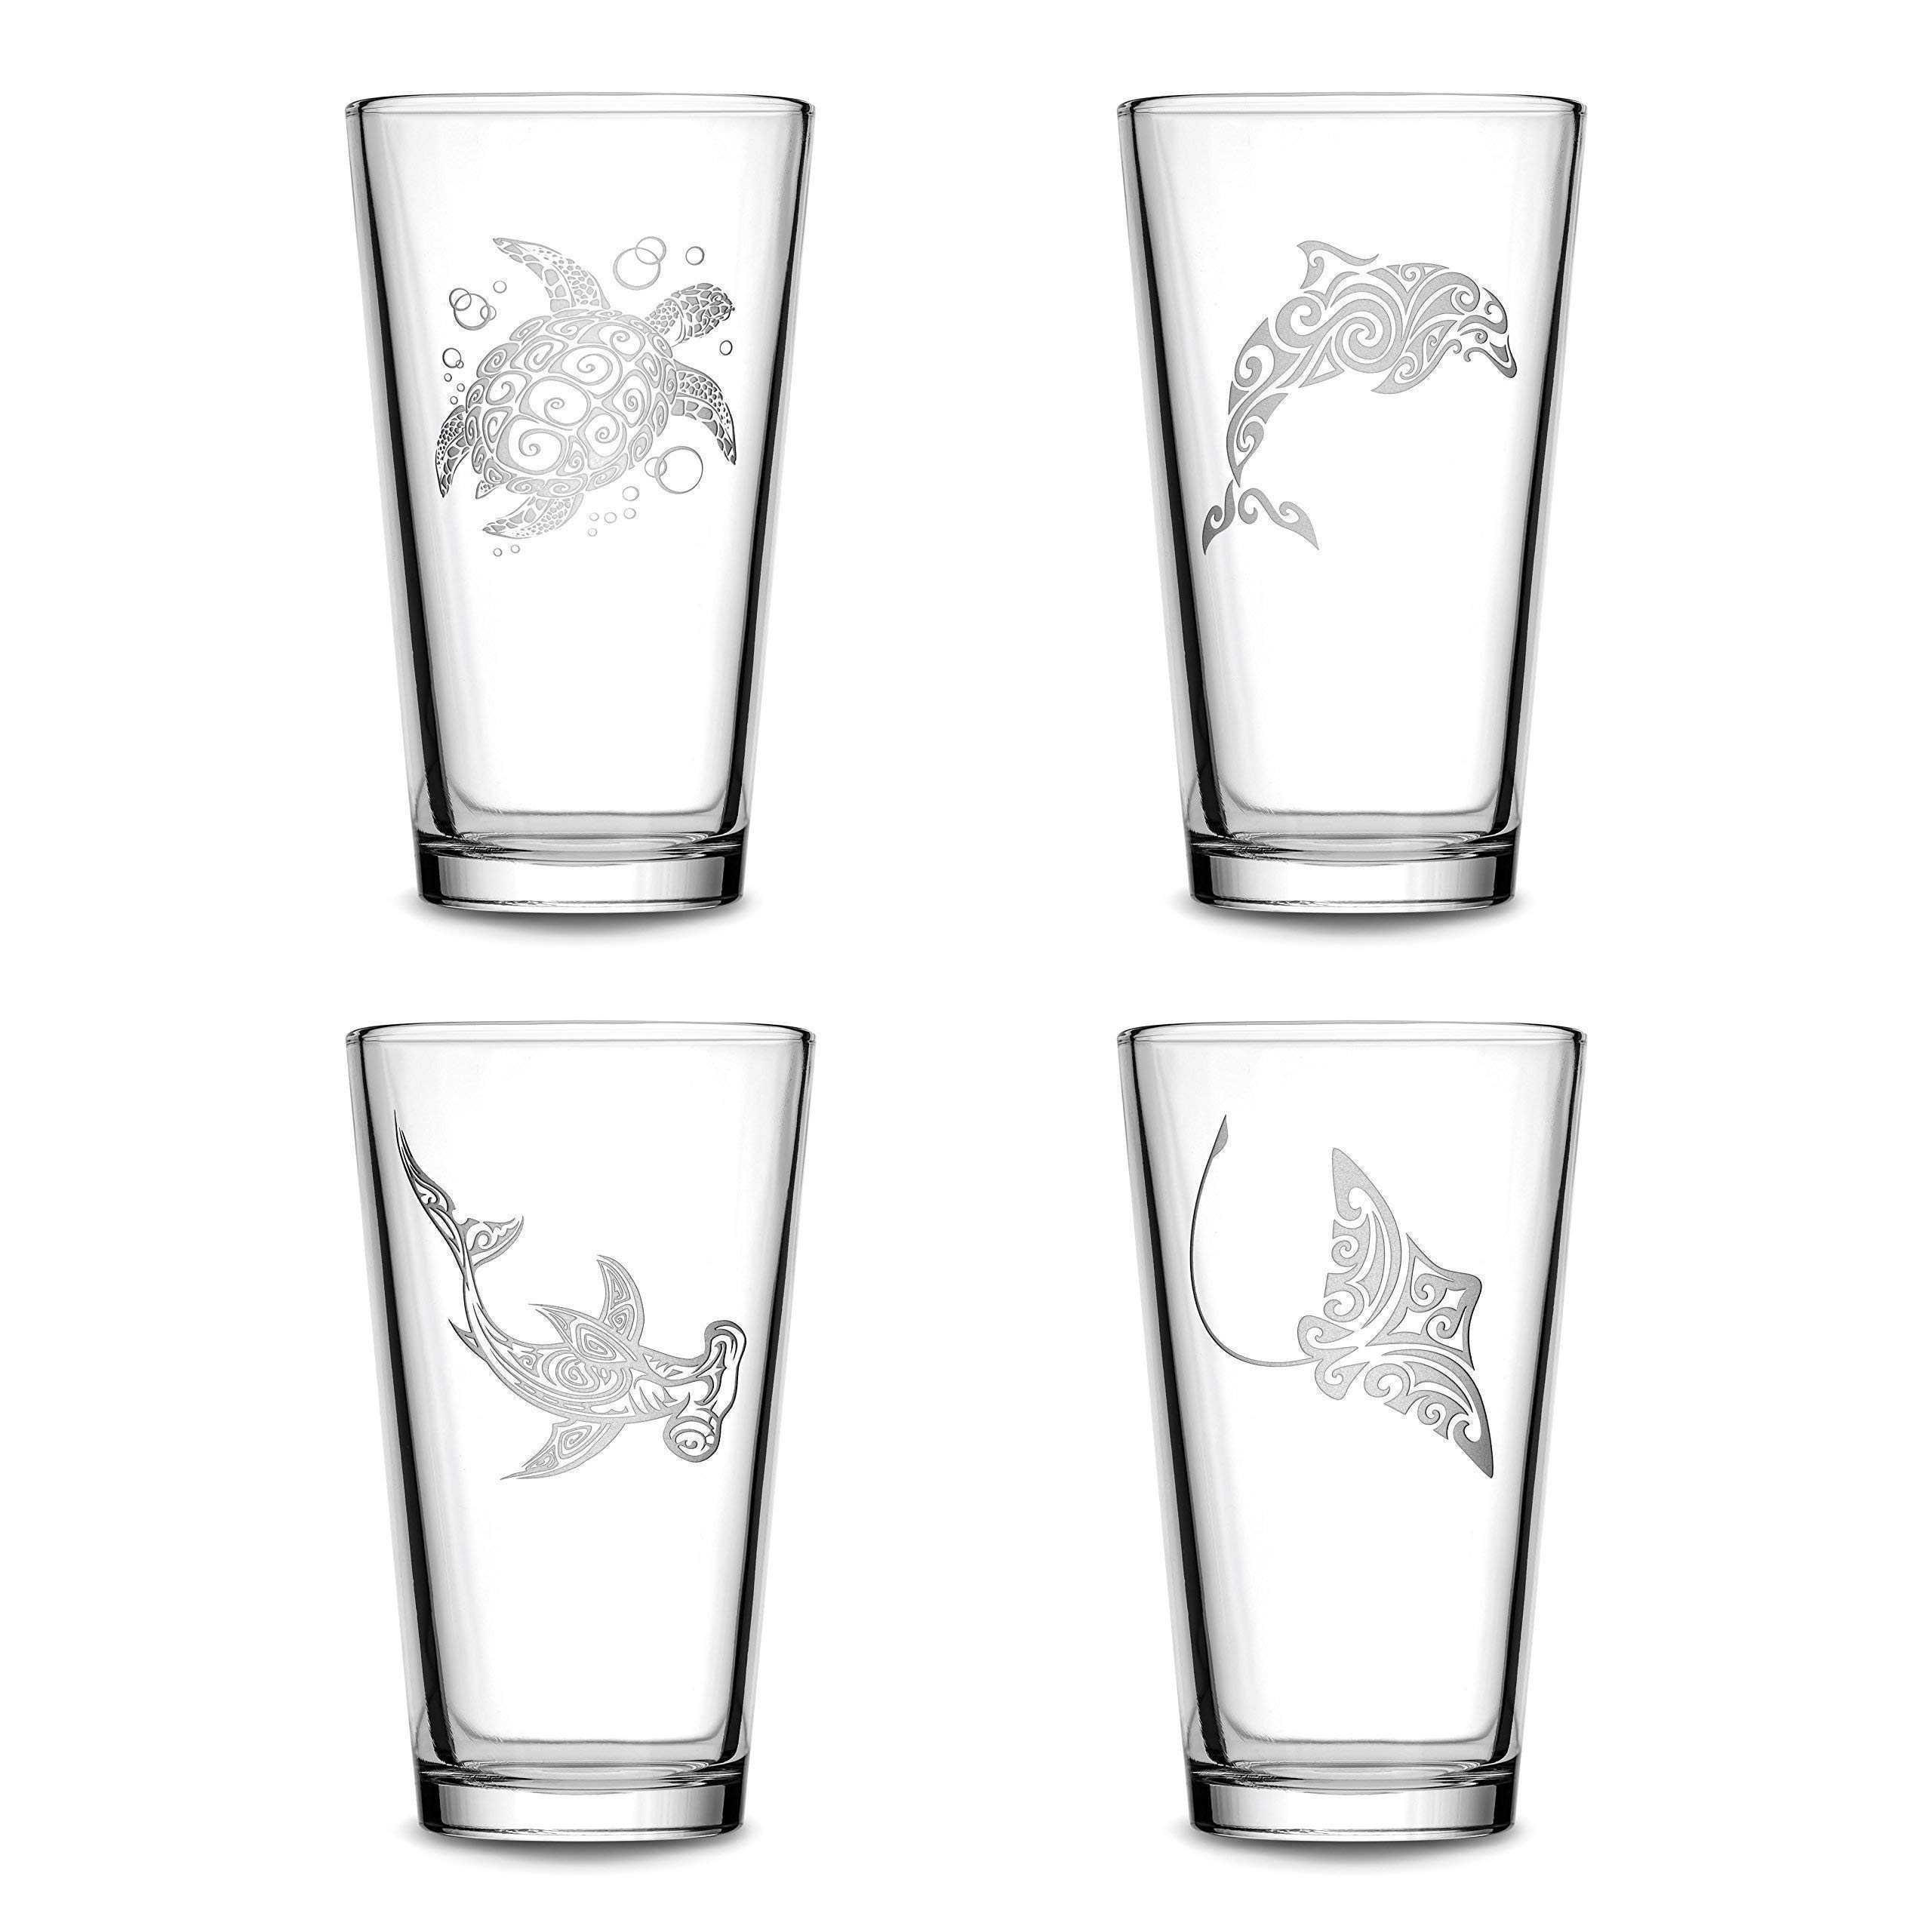 Set of 4, Premium Sea Animal Pint Glasses, Sea Turtle, Dolphin, Hammerhead Shark, Eagle Ray, Made in USA, Hand Etched Tribal Design, 15.3oz Beer Glasses Sand Carved by Integrity Bottles